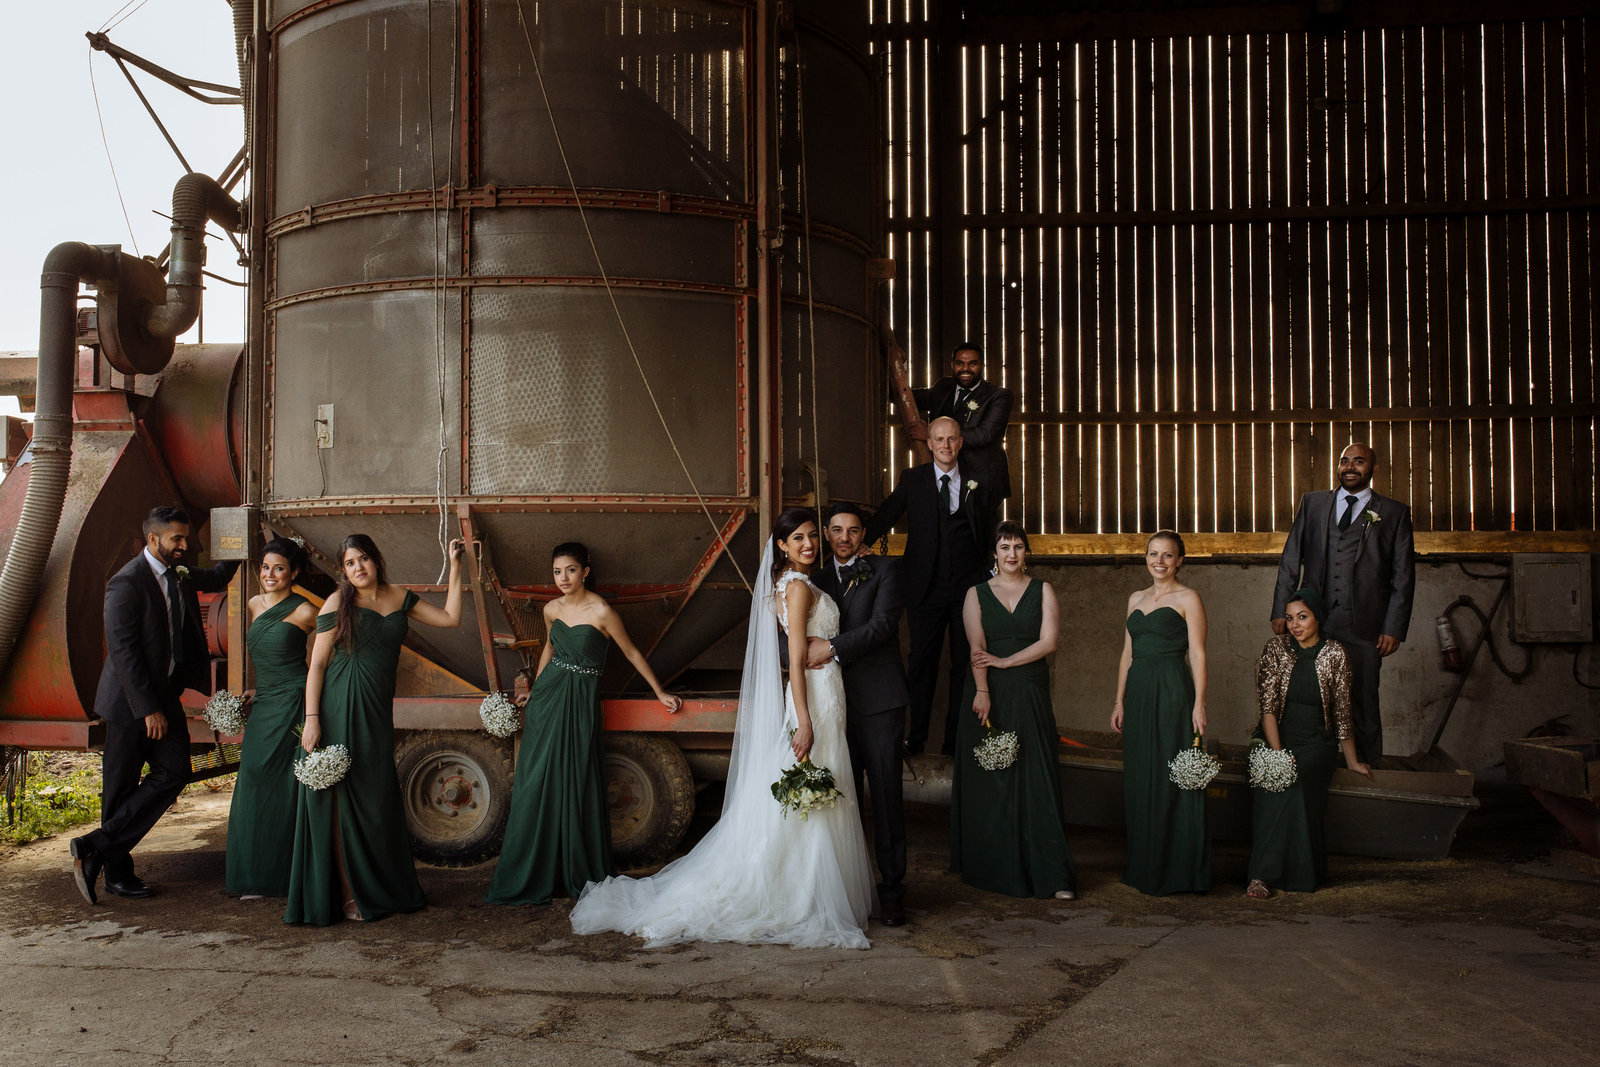 Bridal party in barn at The Normans Wedding Venue. Yorkshire wedding photographer